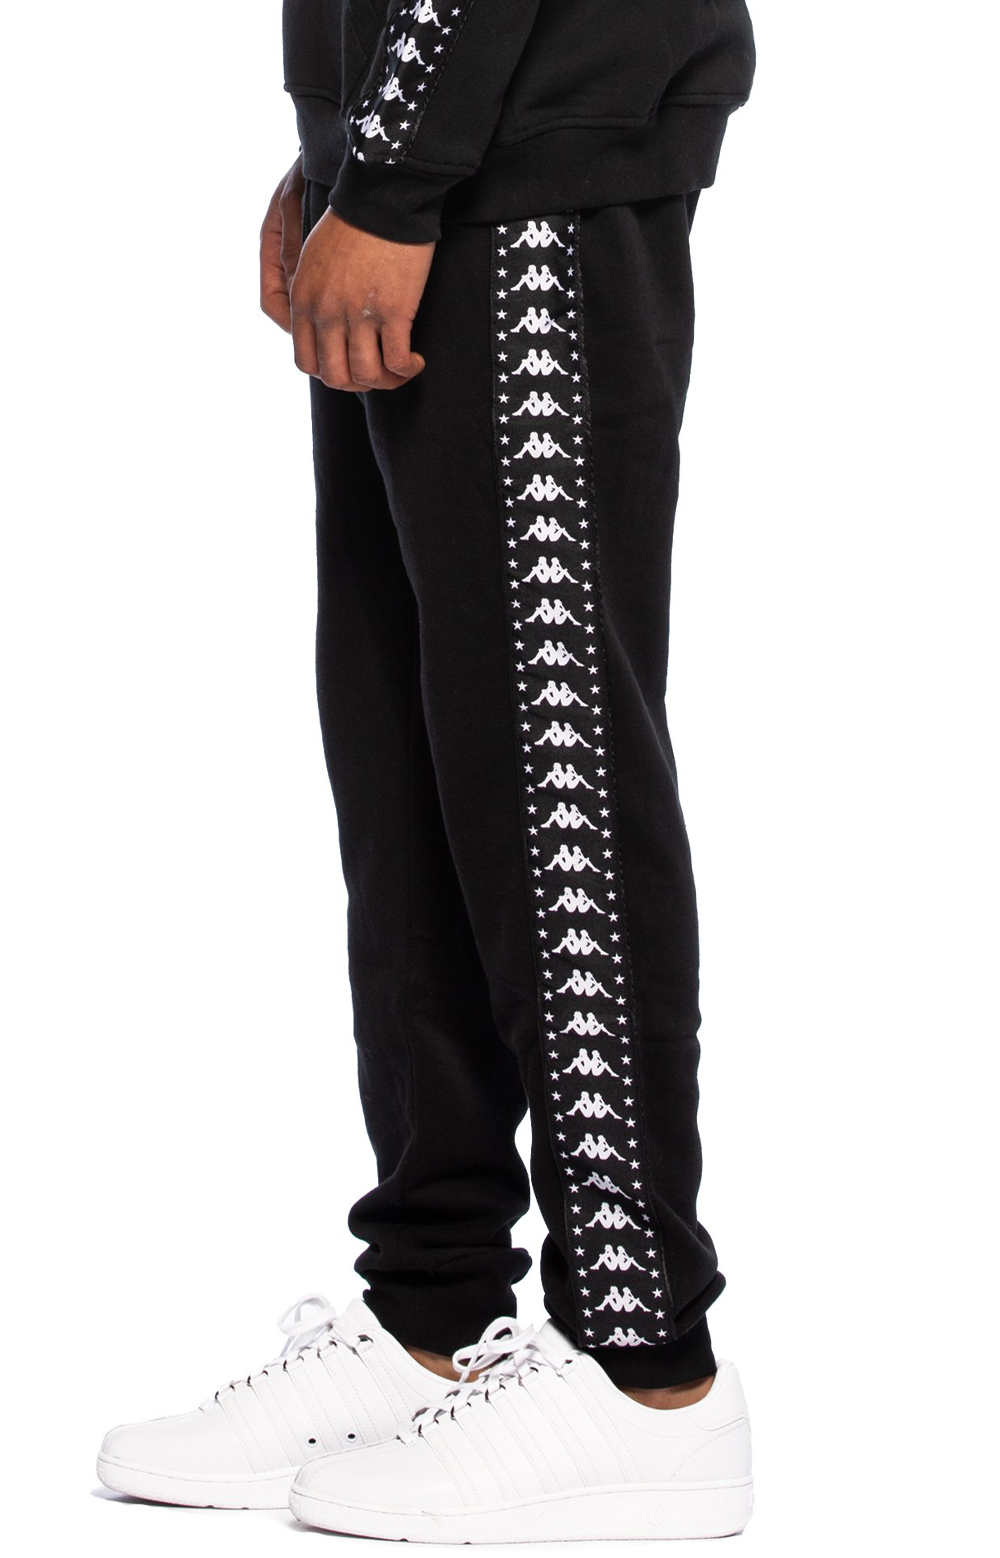 Authentic Amsag Slim Fit Sweatpants - Black/White